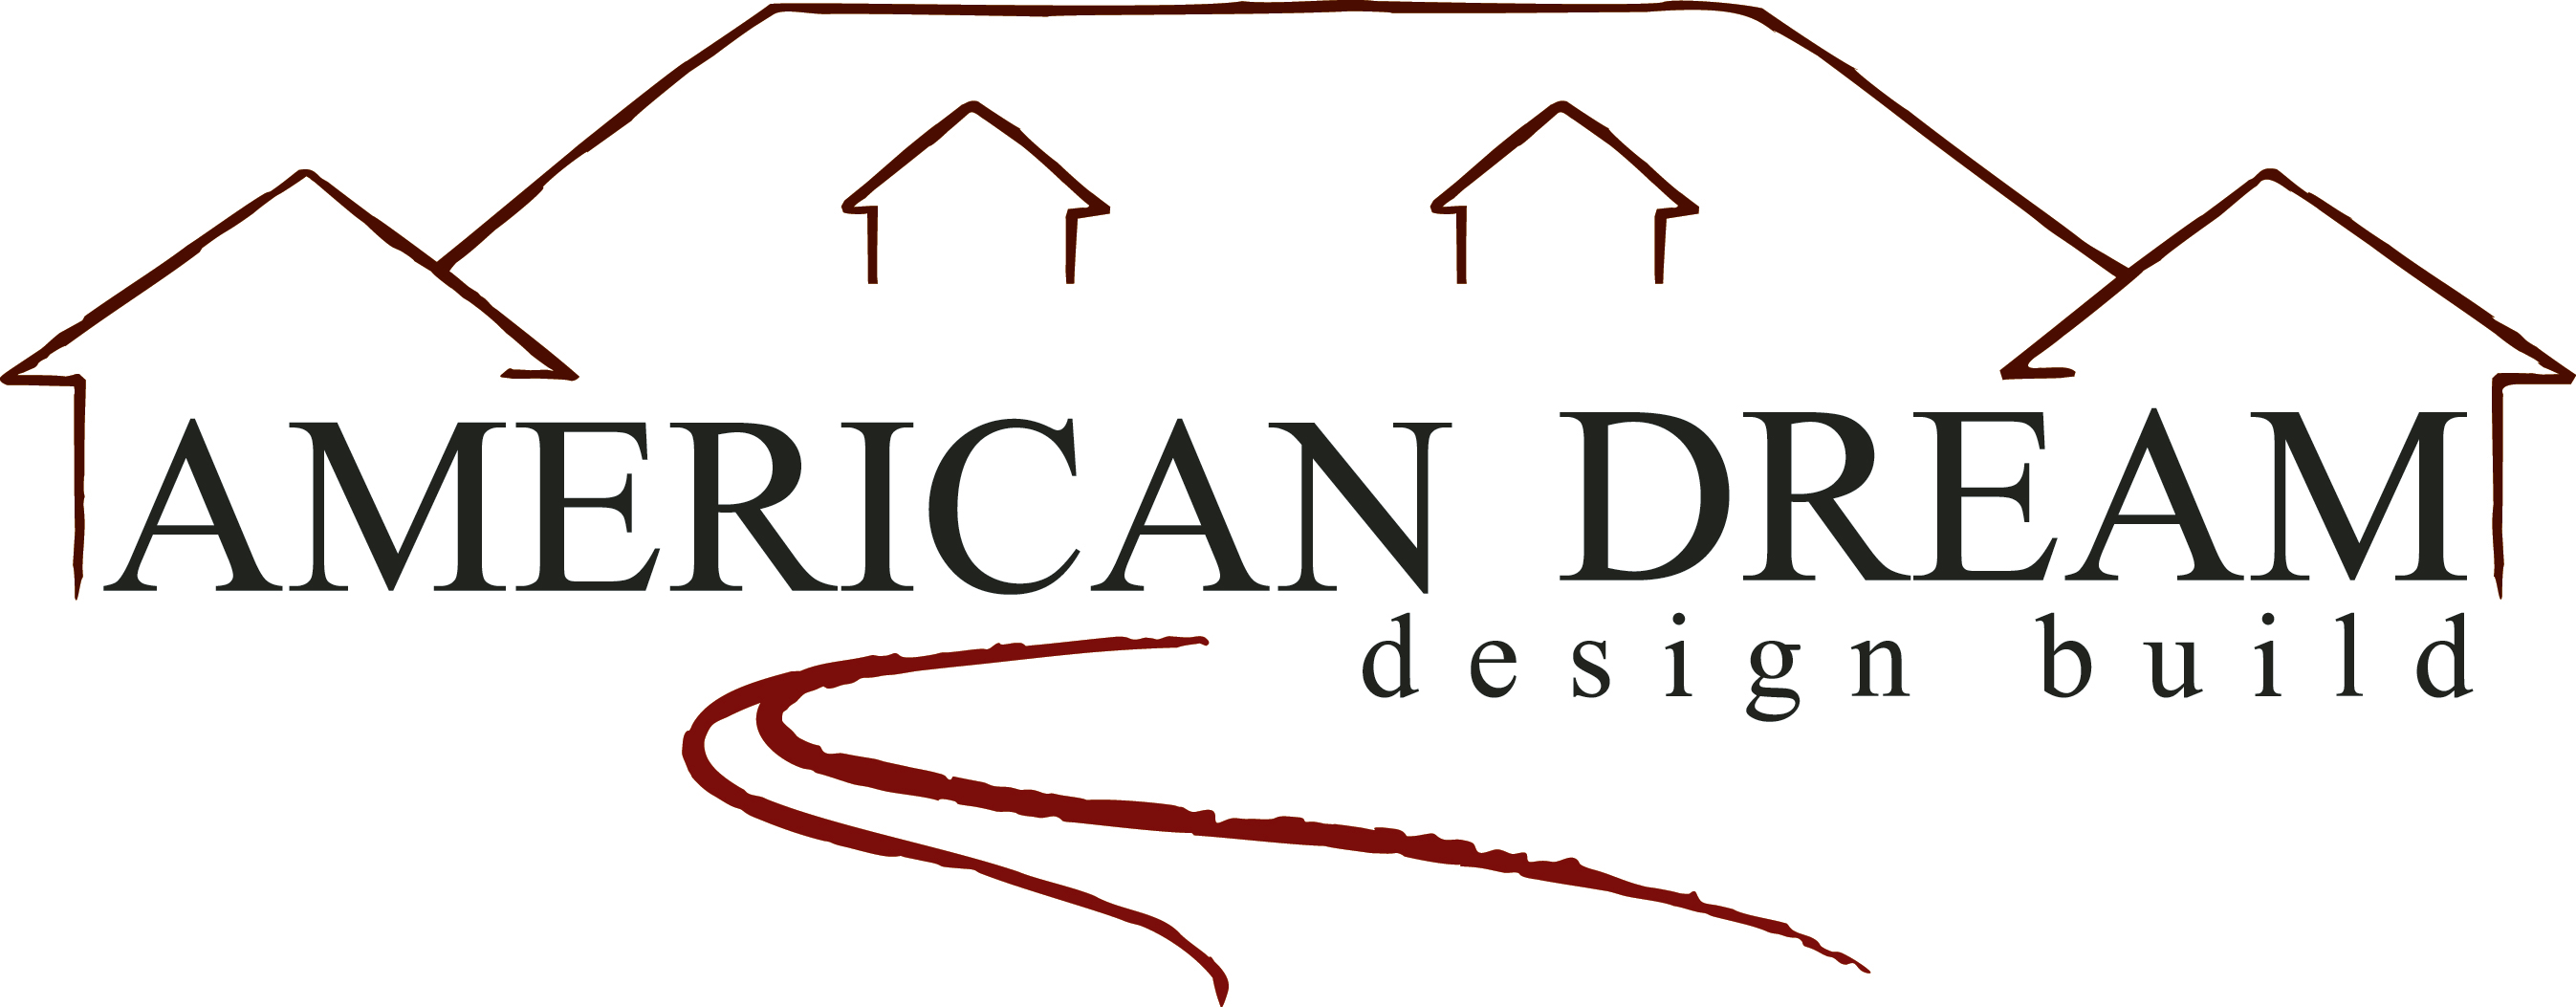 American dream products coupon code